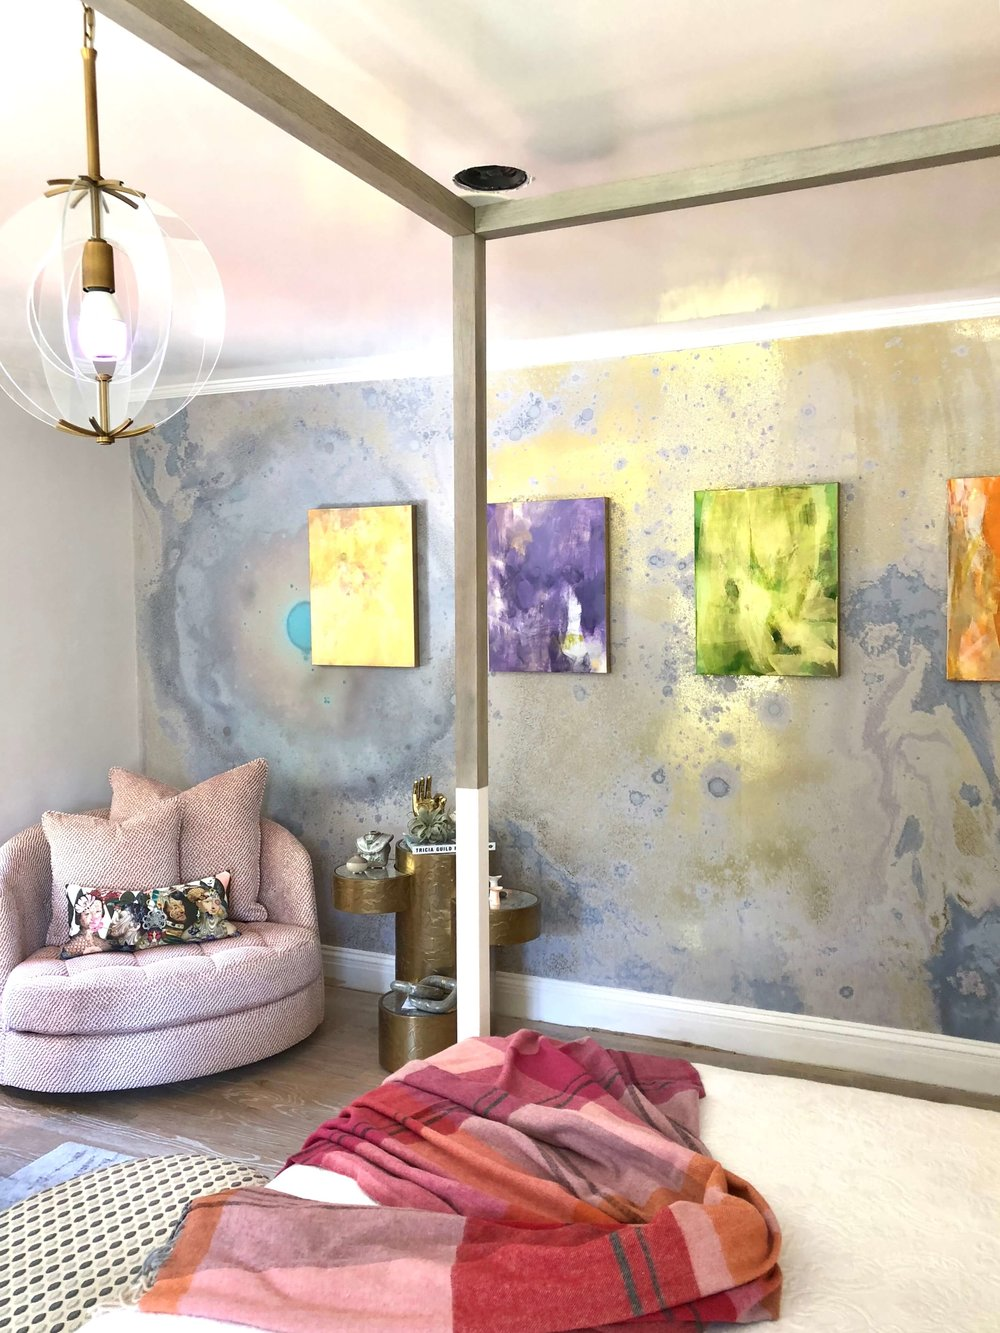 Featured Artist - Kari Kroll, in the teen girl bedroom of the Pasadena Showcase House of Design, room designed by Jeanne Chung, Cozy Stylish Chic